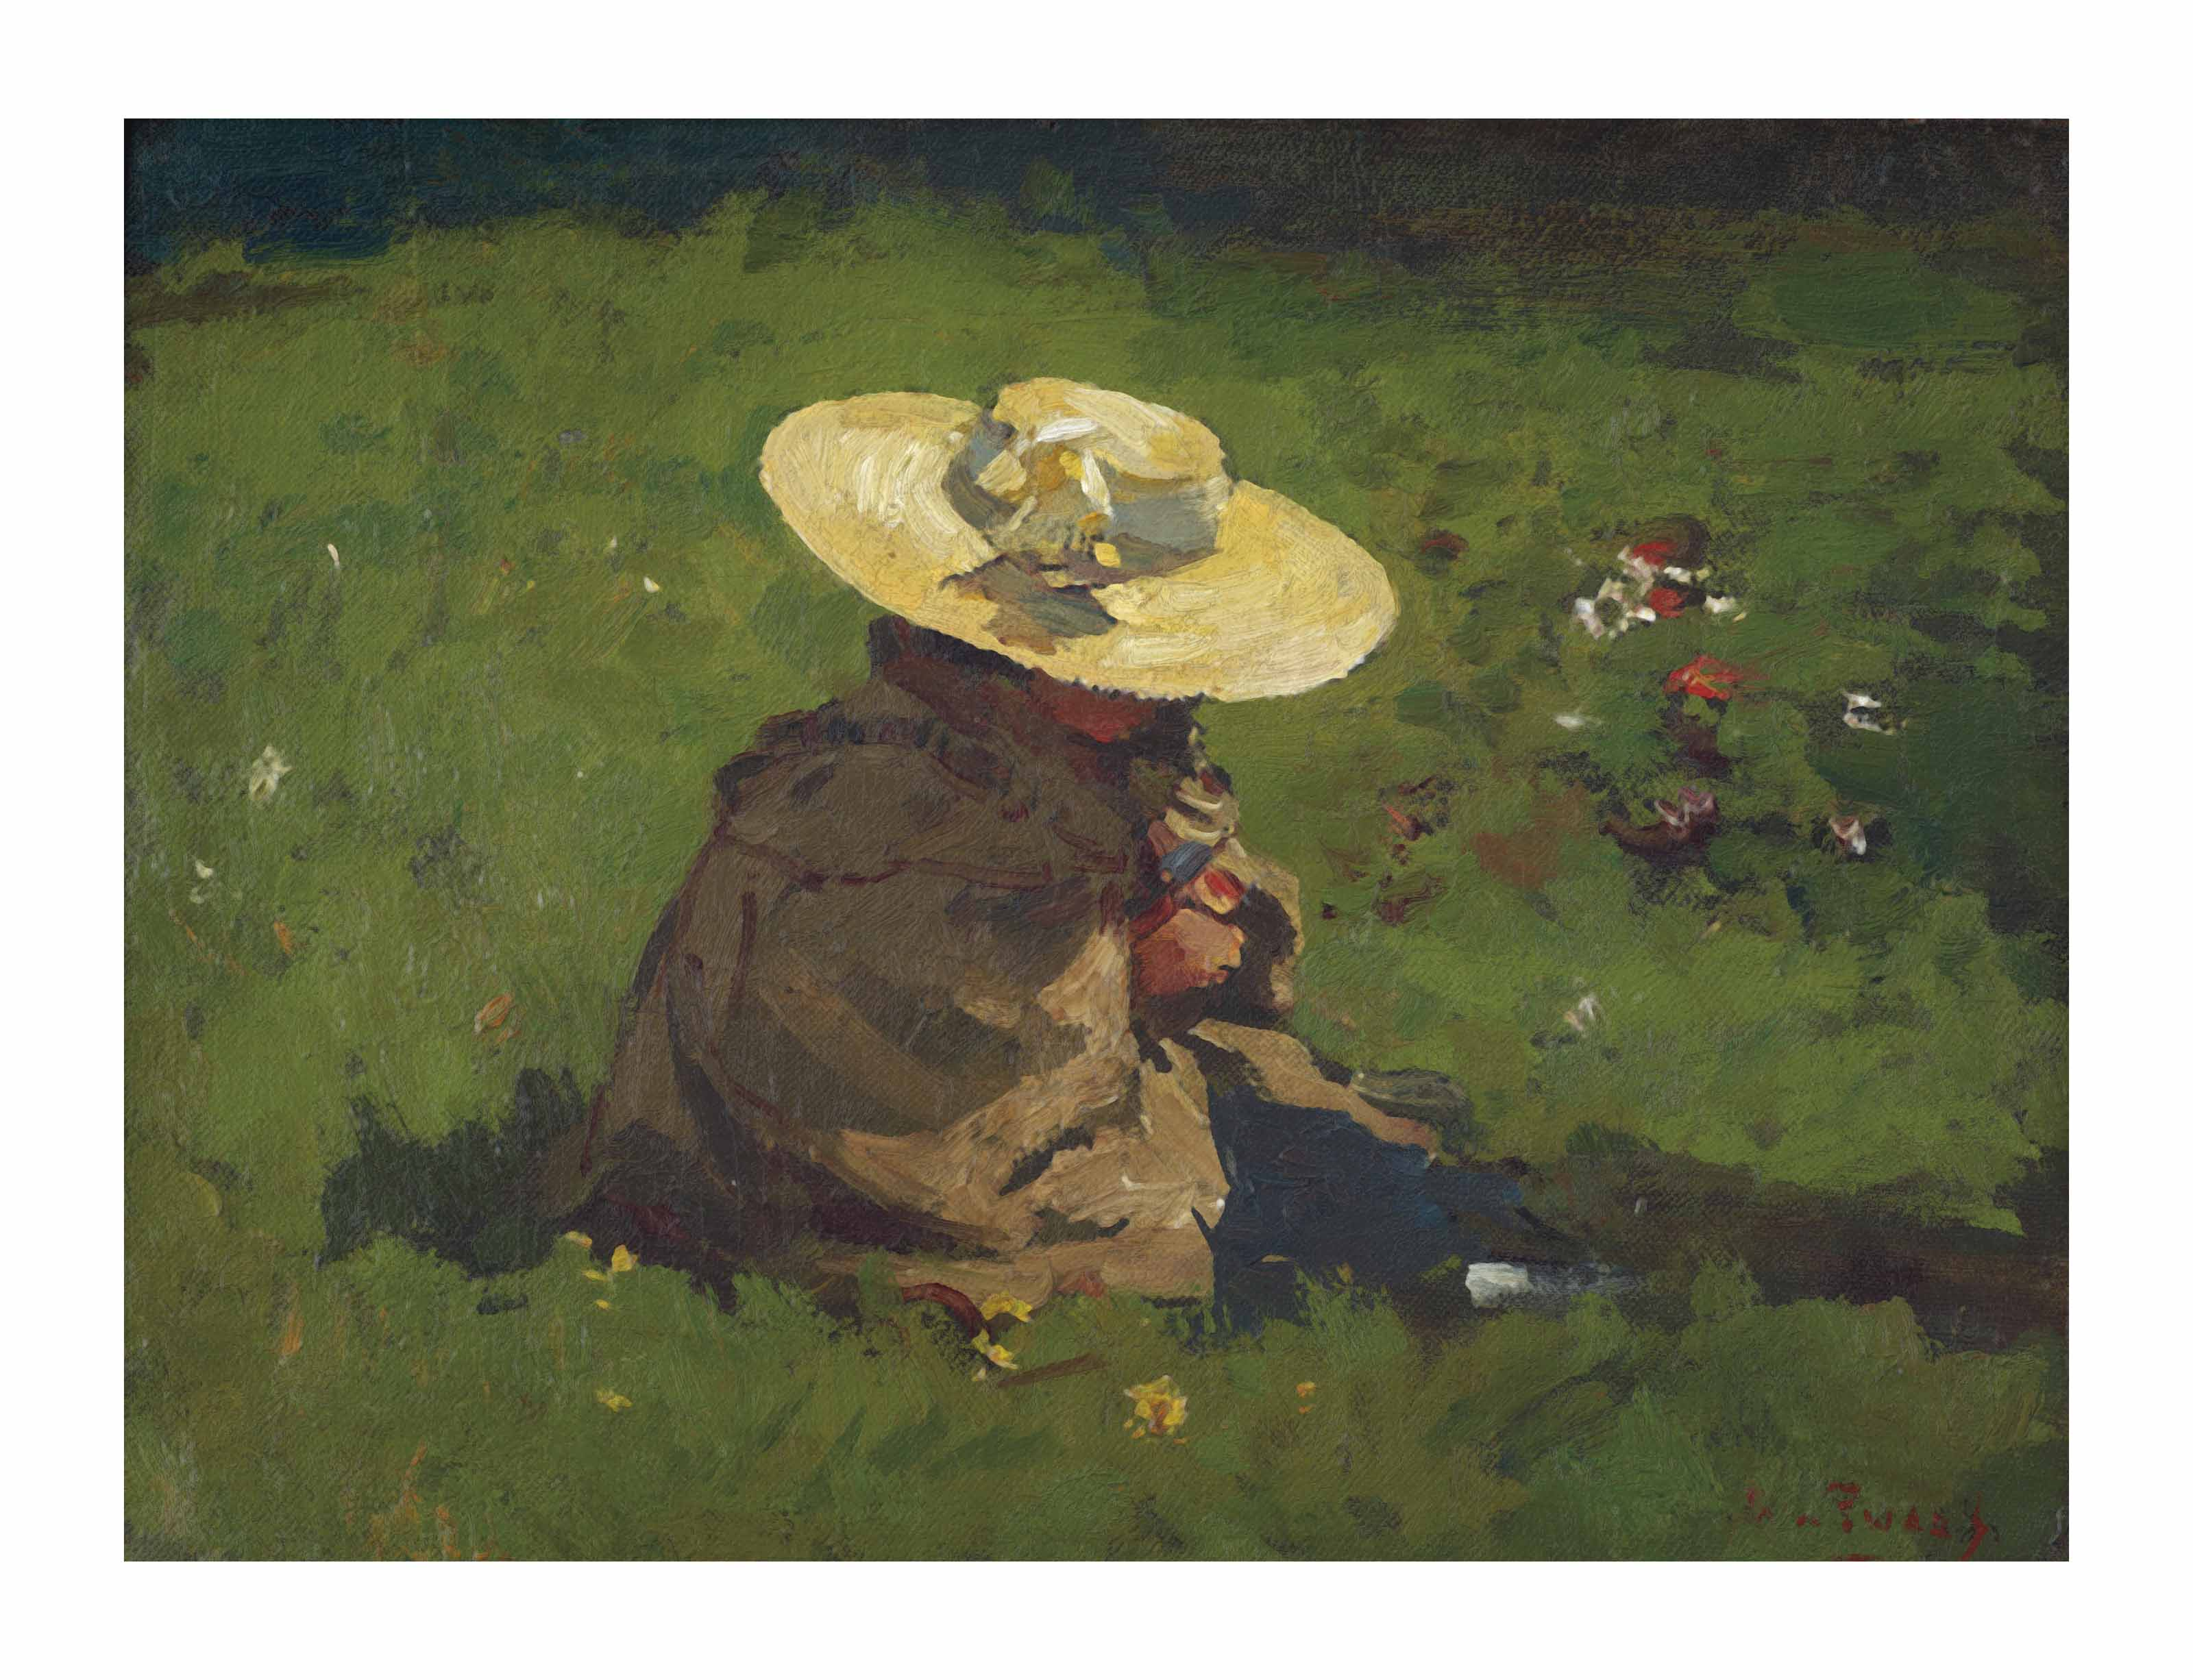 Marietje in het gras: the daughter of the artist with a straw head